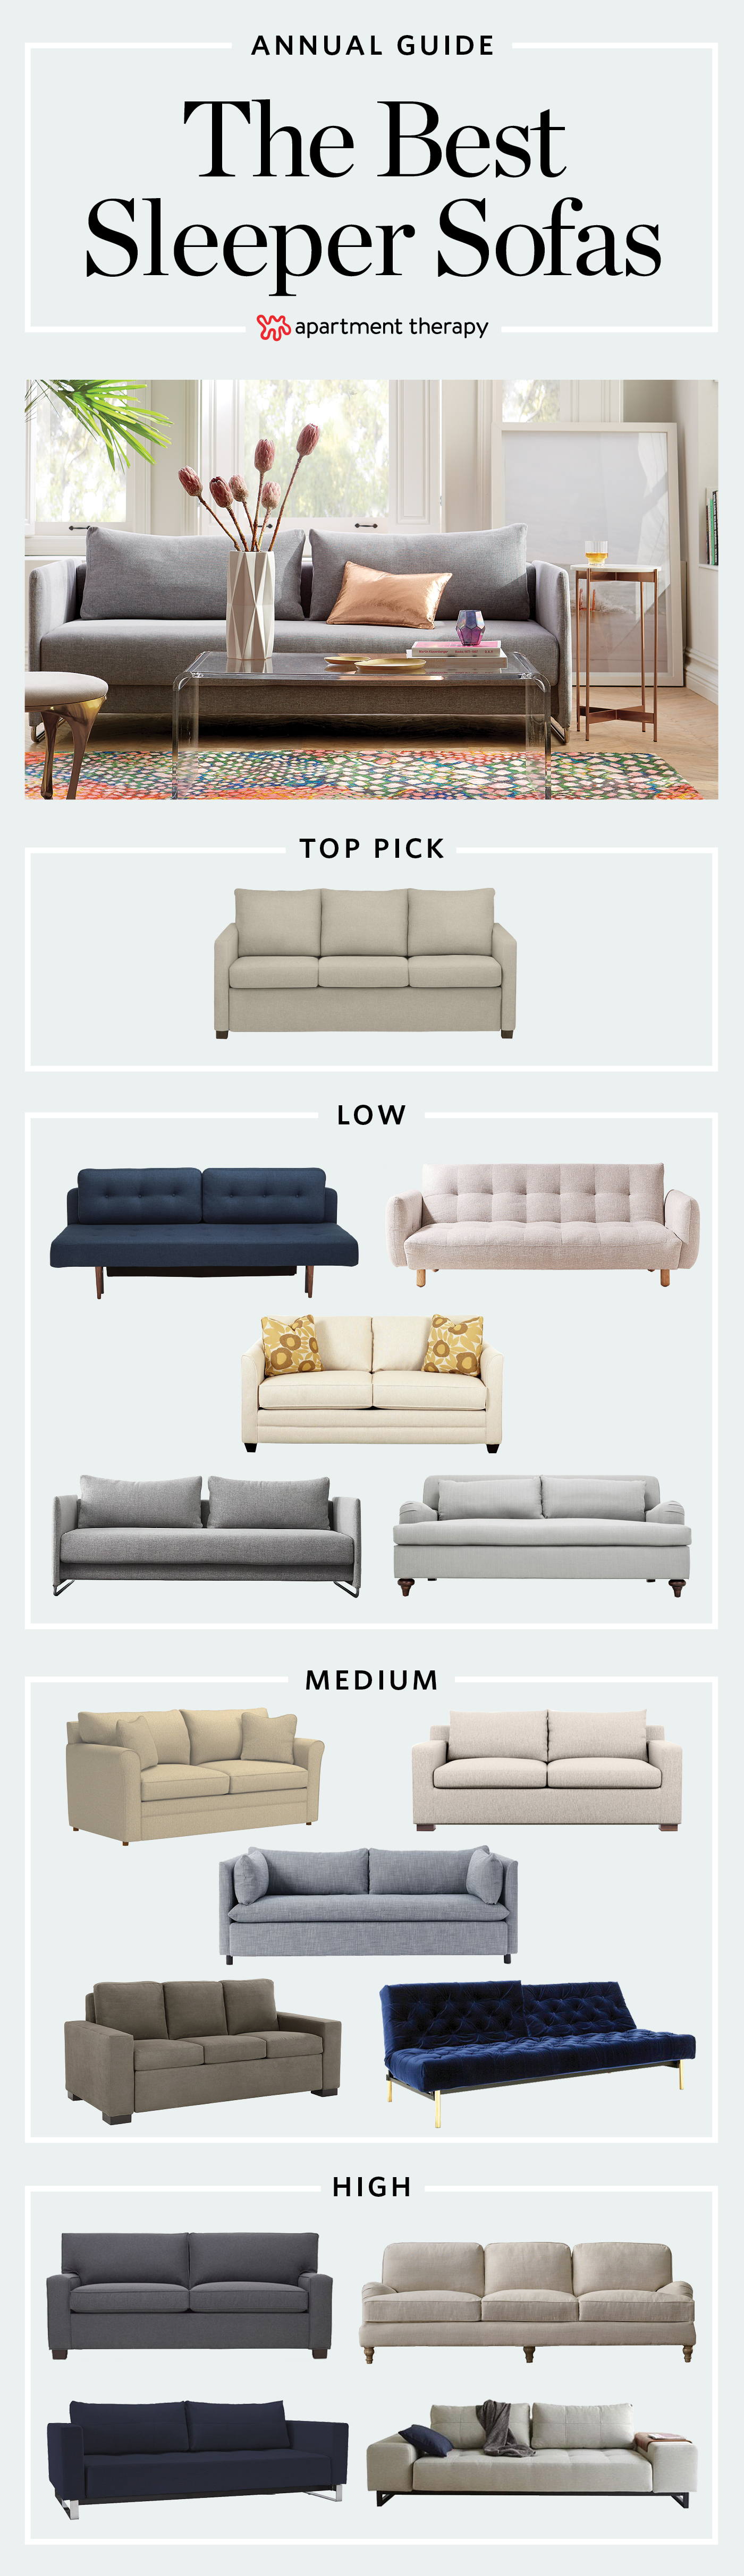 Condo Couches The Best Sleeper Sofas And Sofa Beds Condo Ideas Best